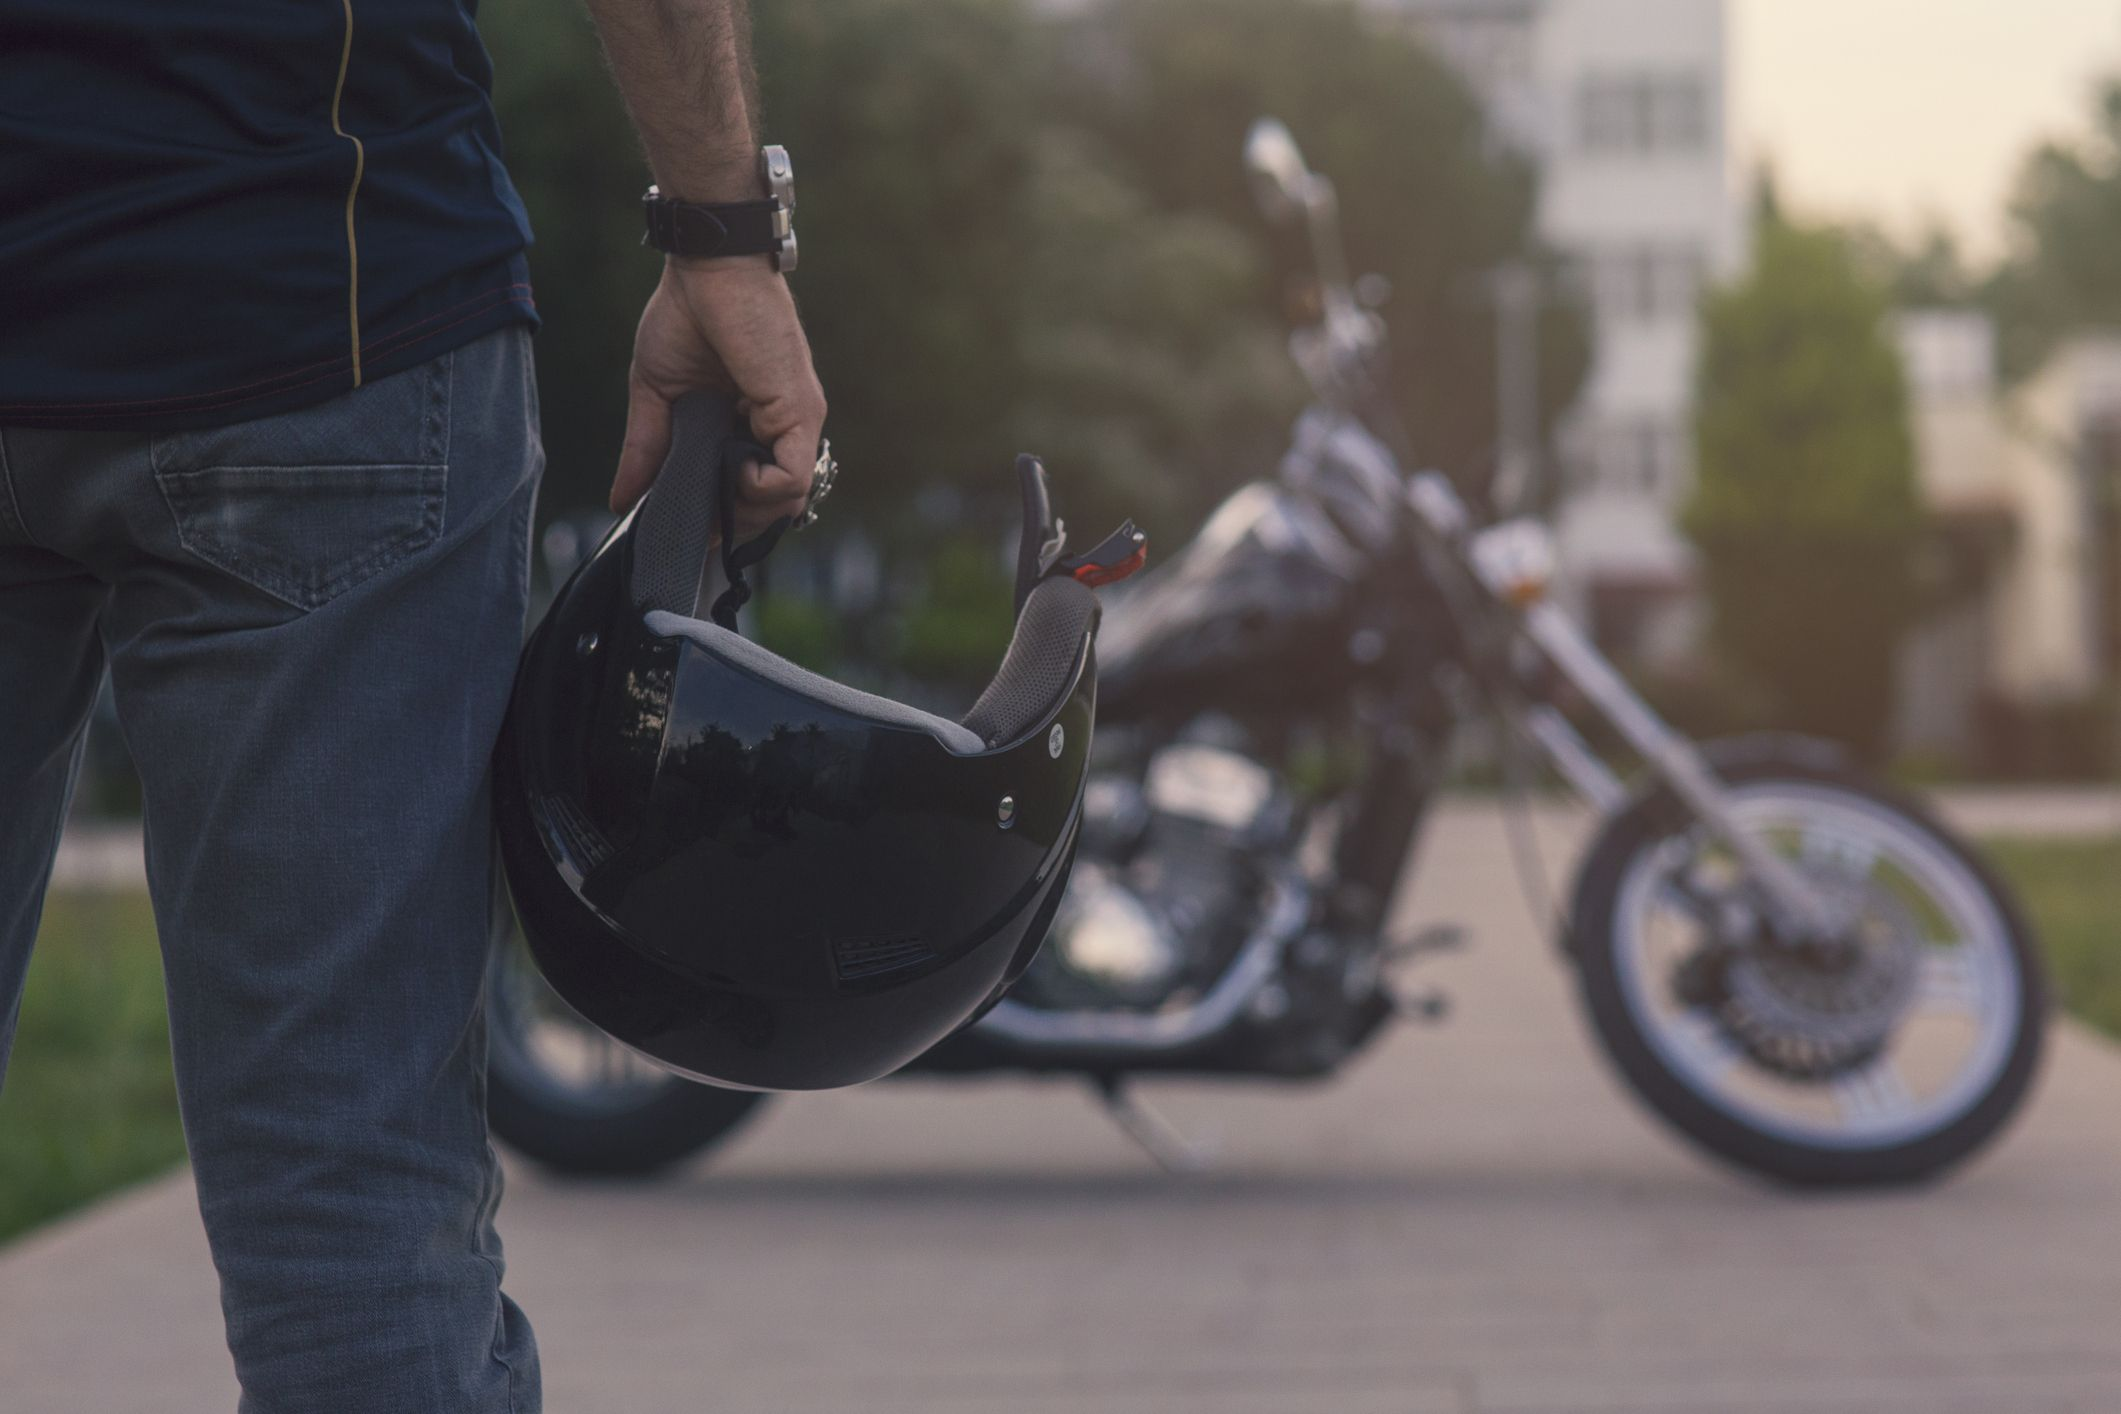 Pin On Motorcycle Law